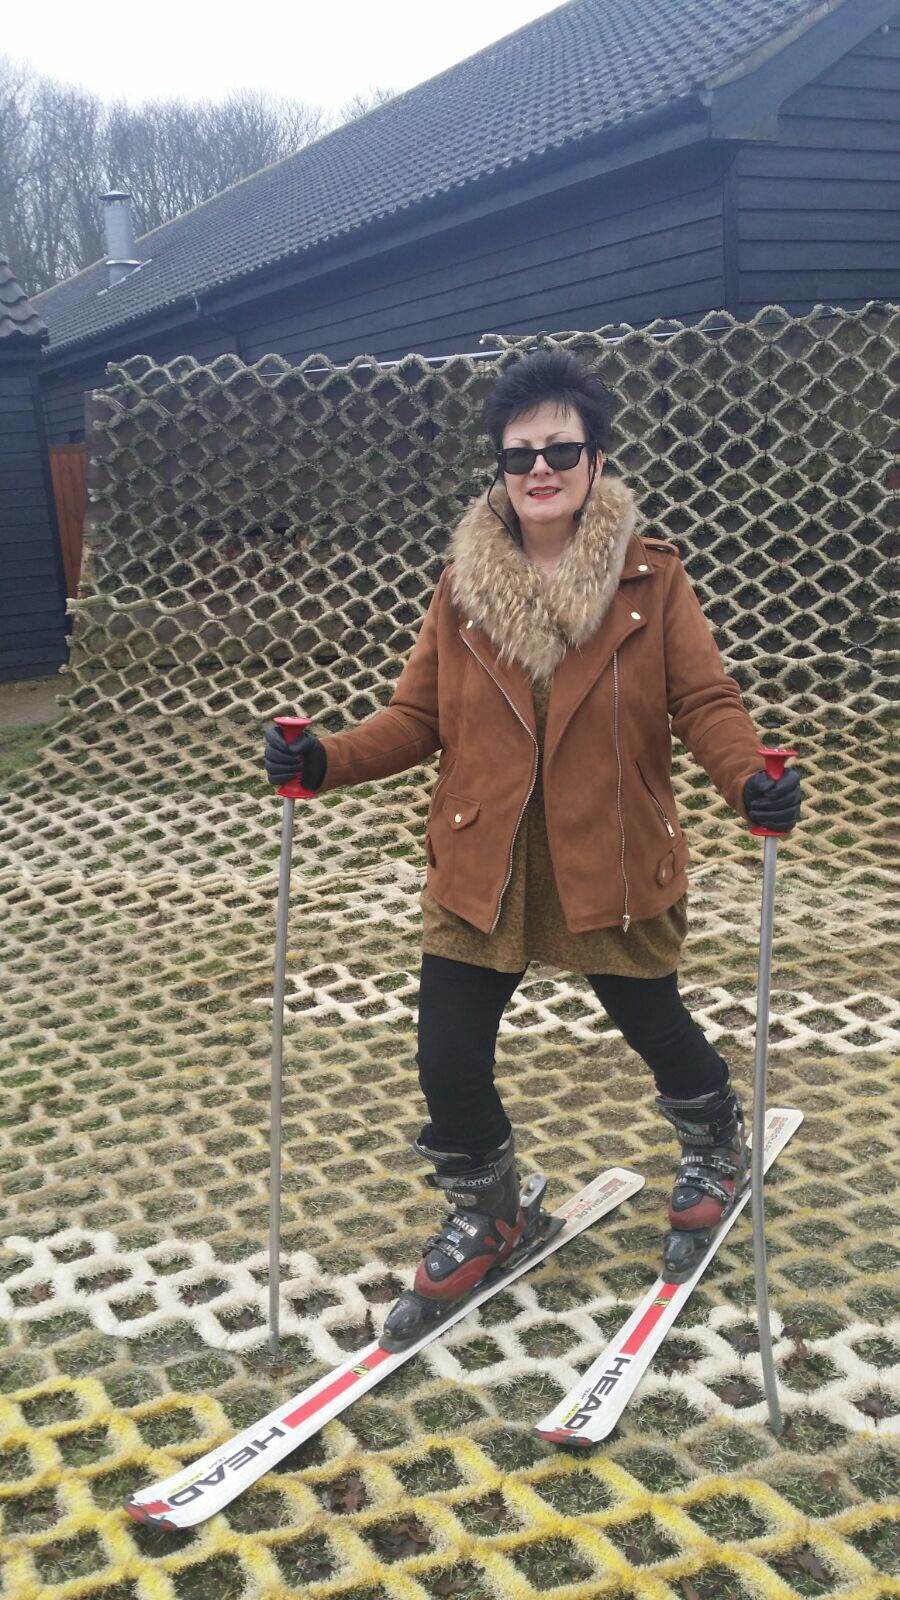 My mum down at the Suffolk Dry Ski Centre in Ipswich, Suffolk